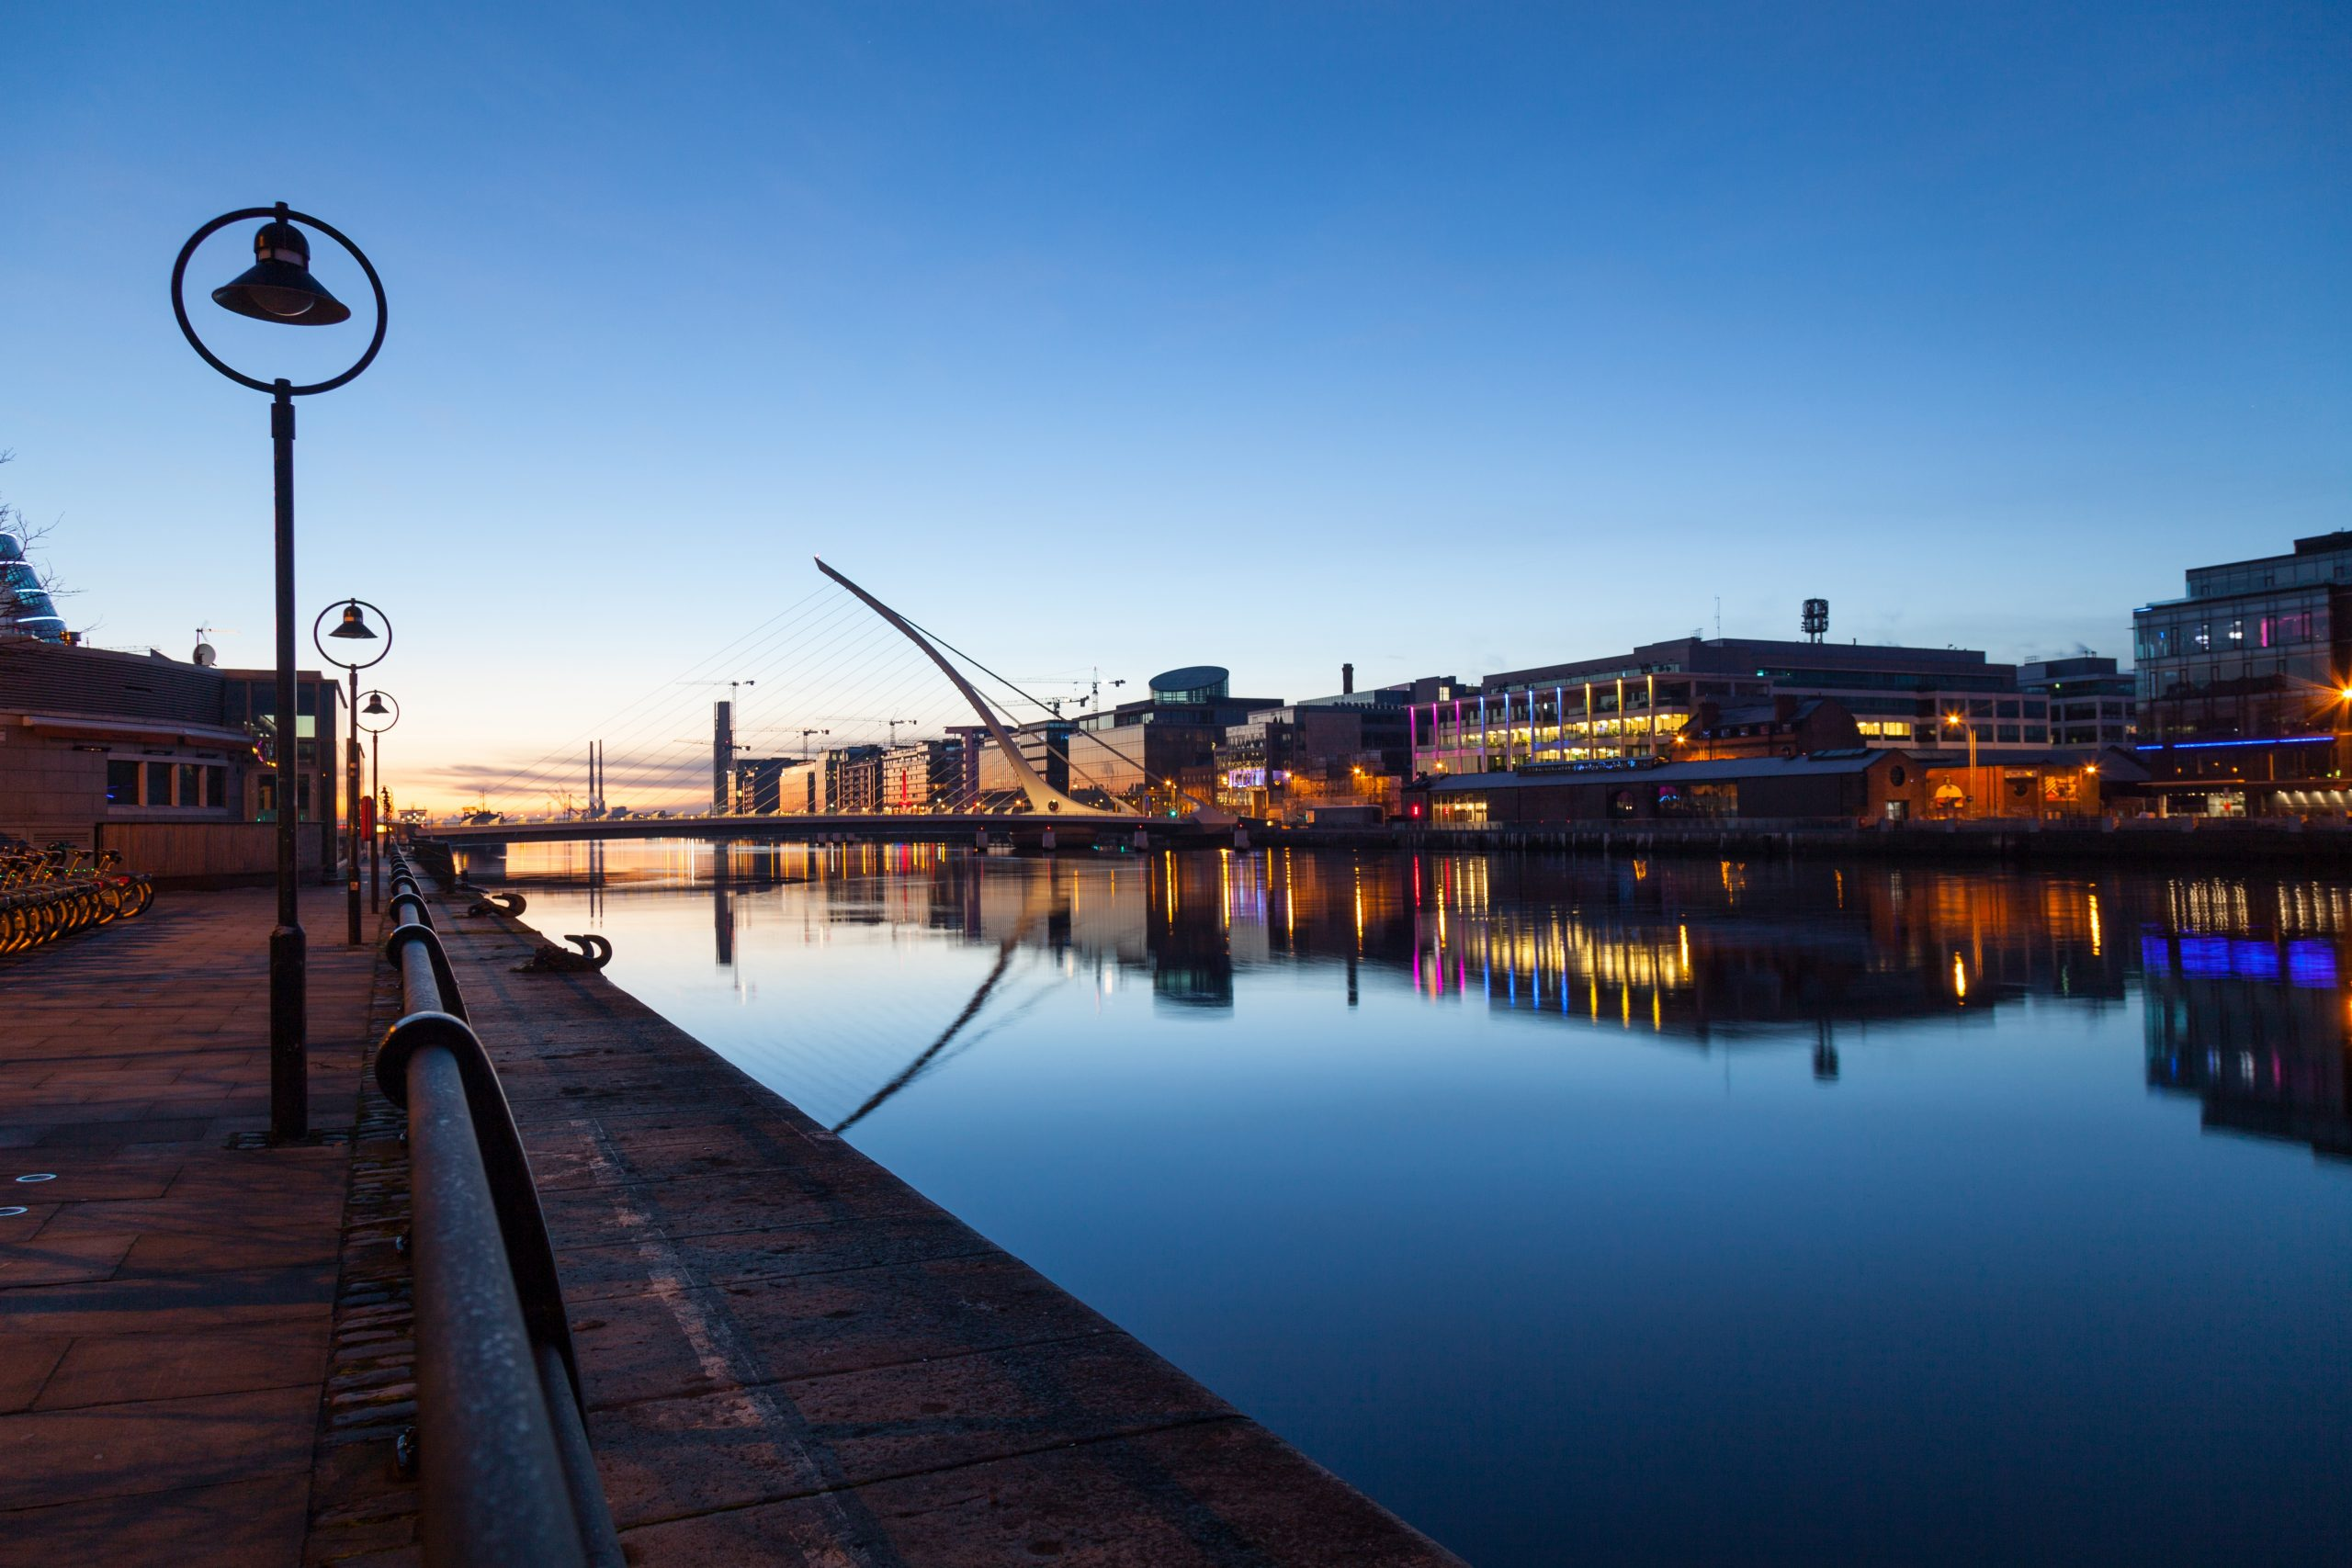 Liffey river promenade in the early morning